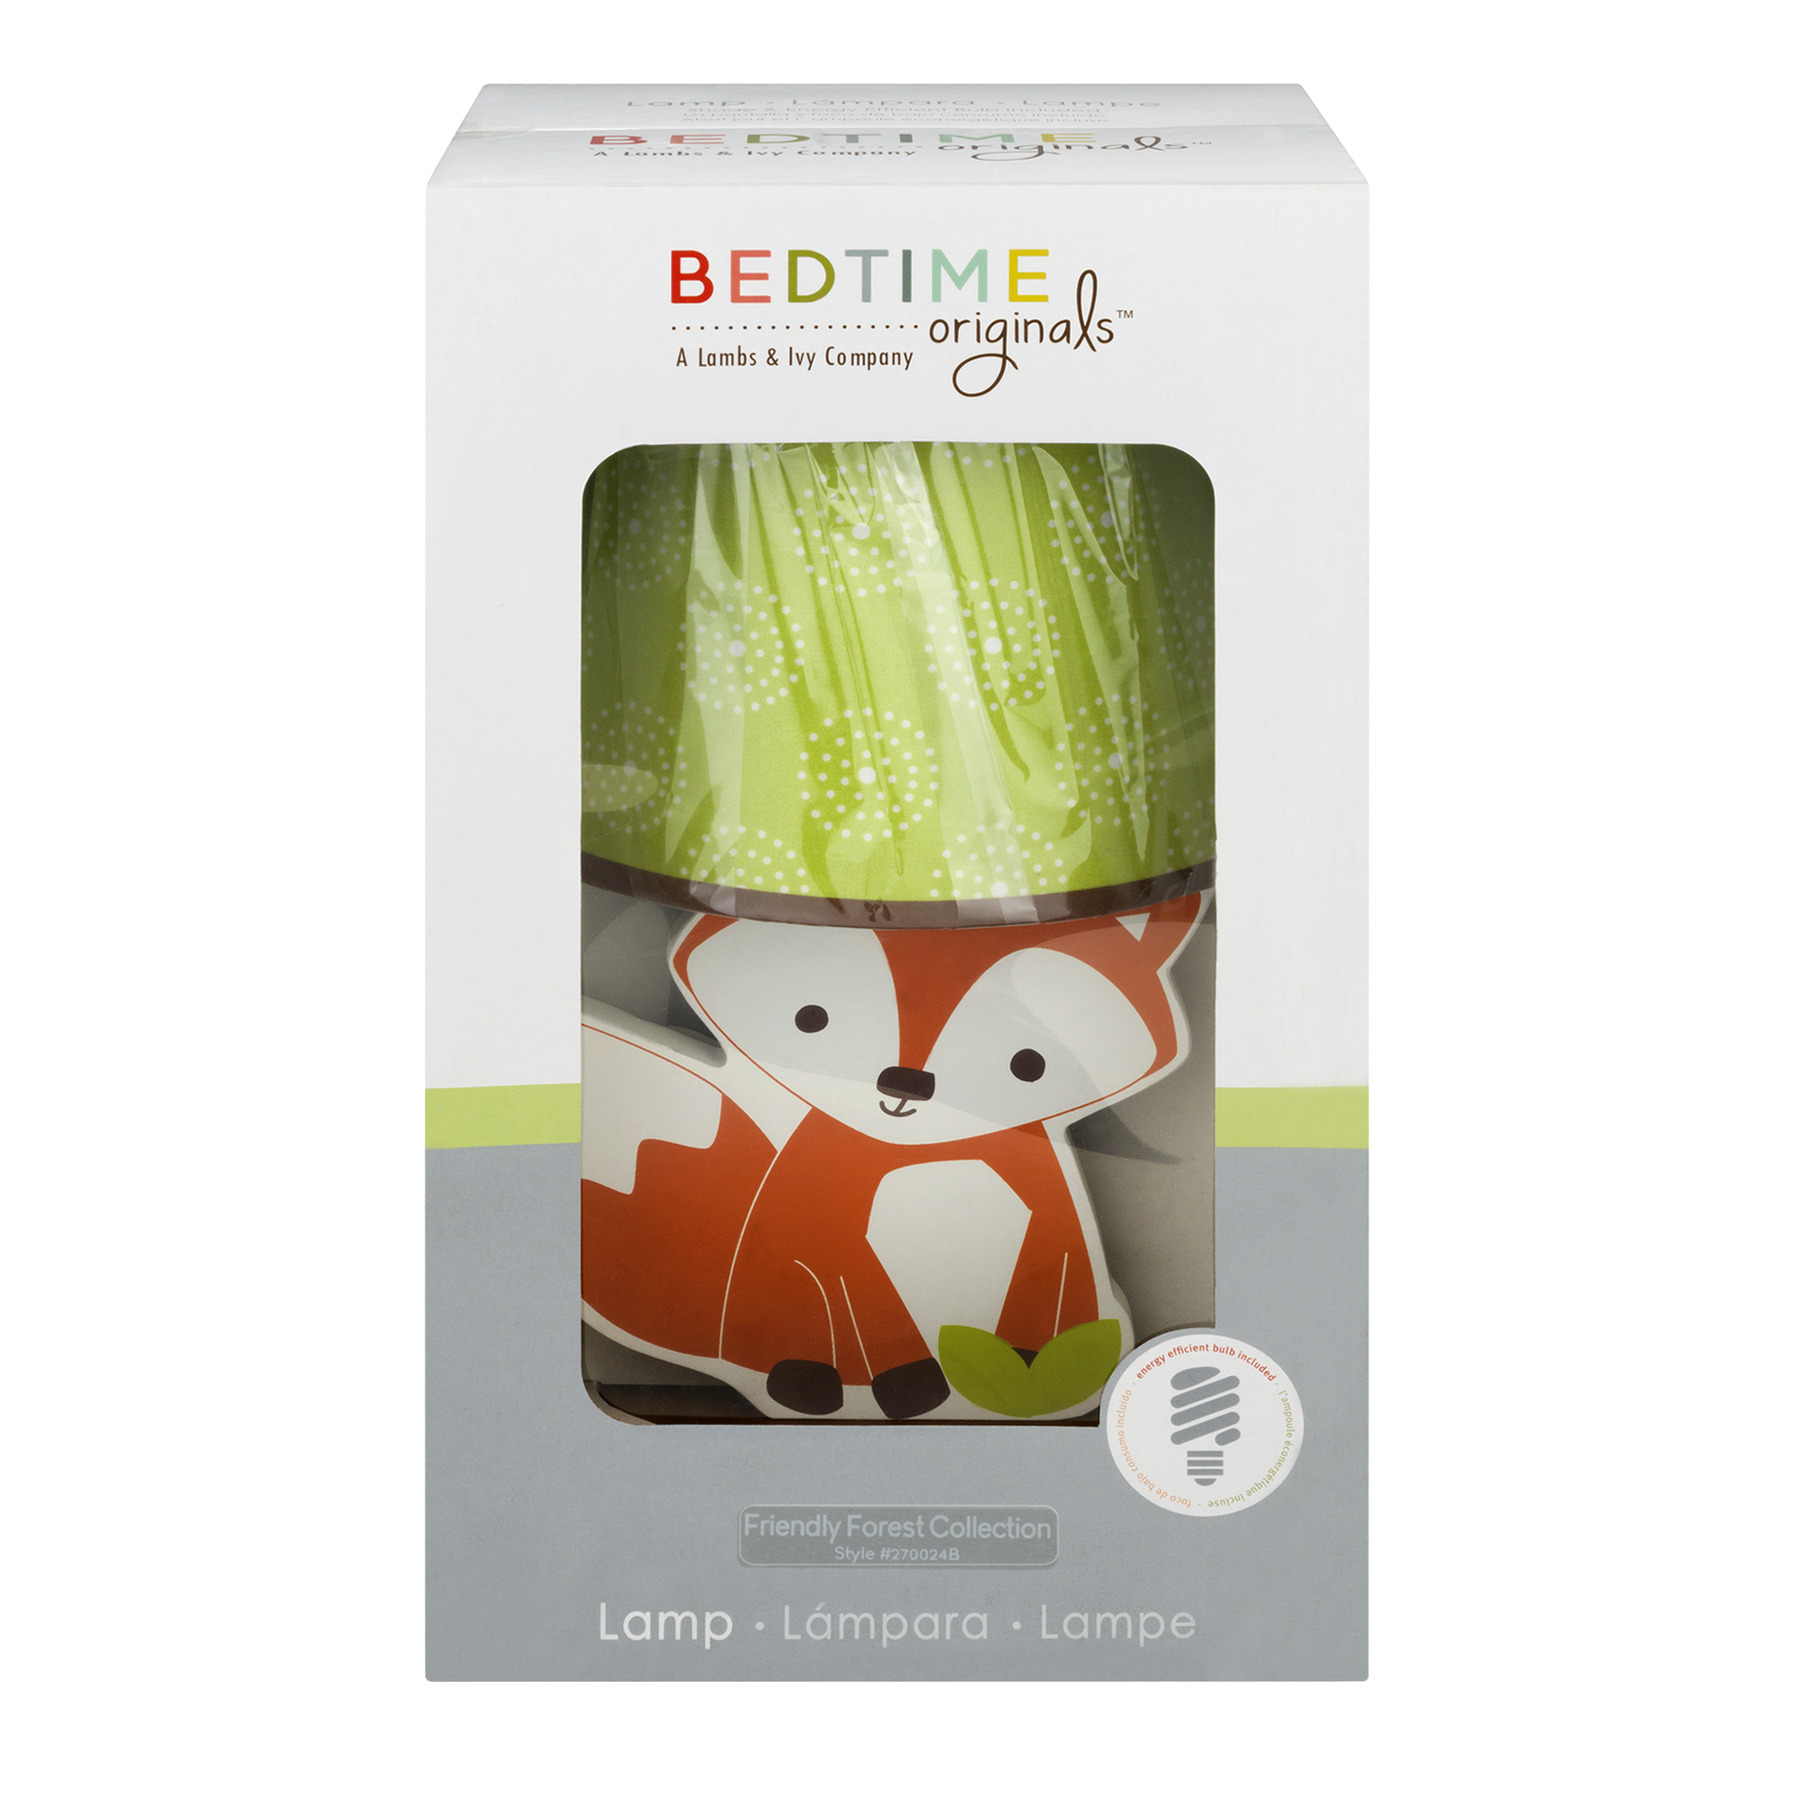 Bedtime Originals Lamp Friendly Forest Collection -1 CT1.0 CT